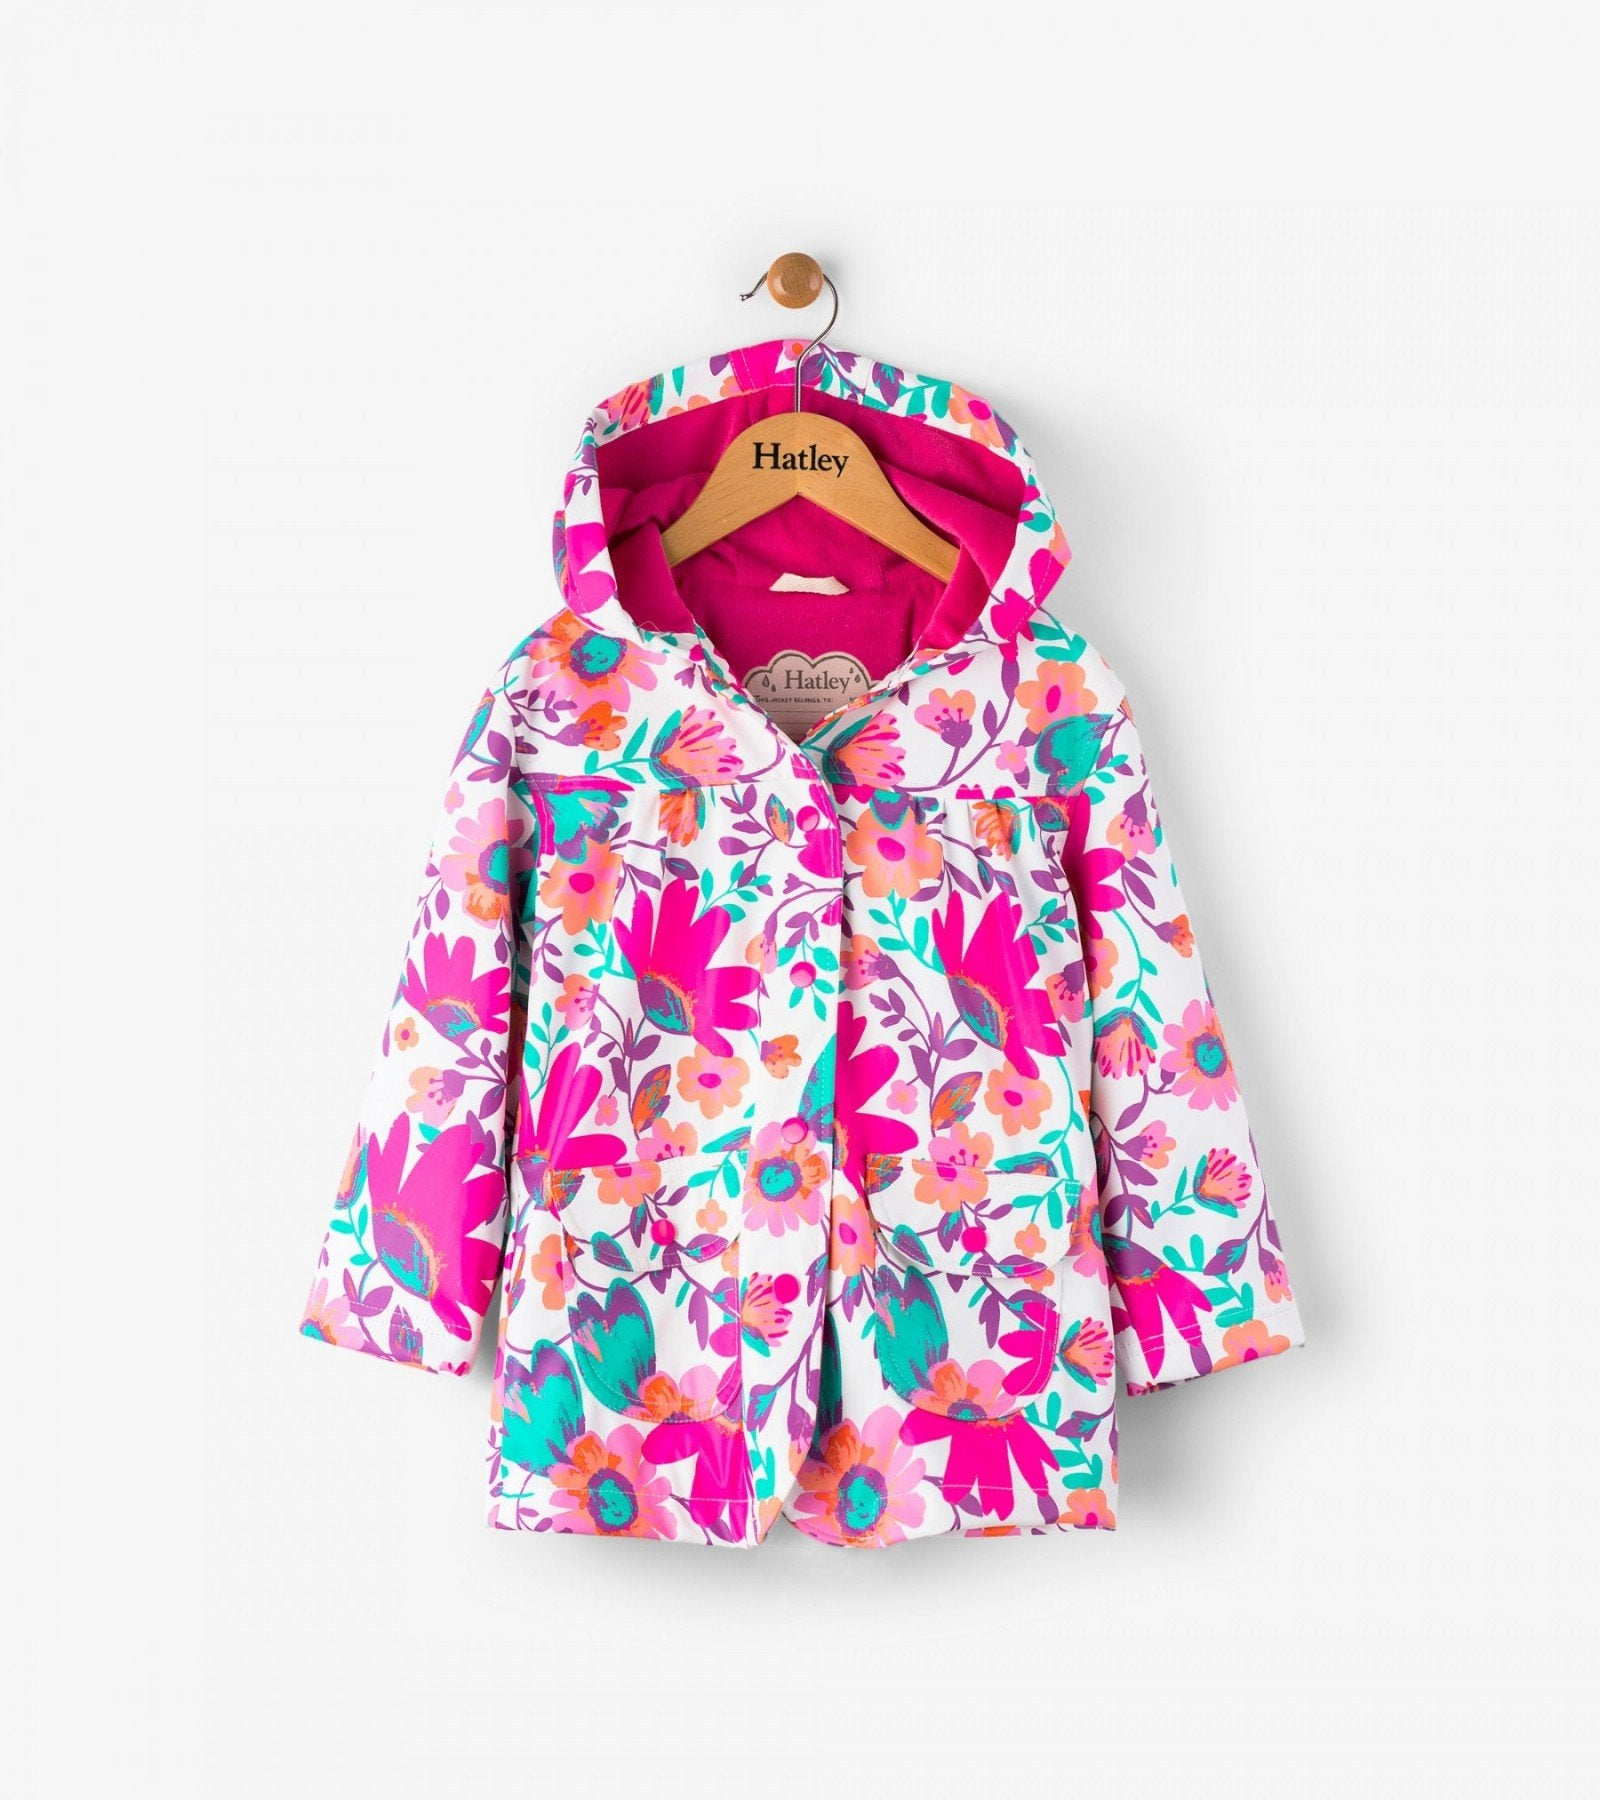 Hatley tortuga bay floral classic raincoat in White